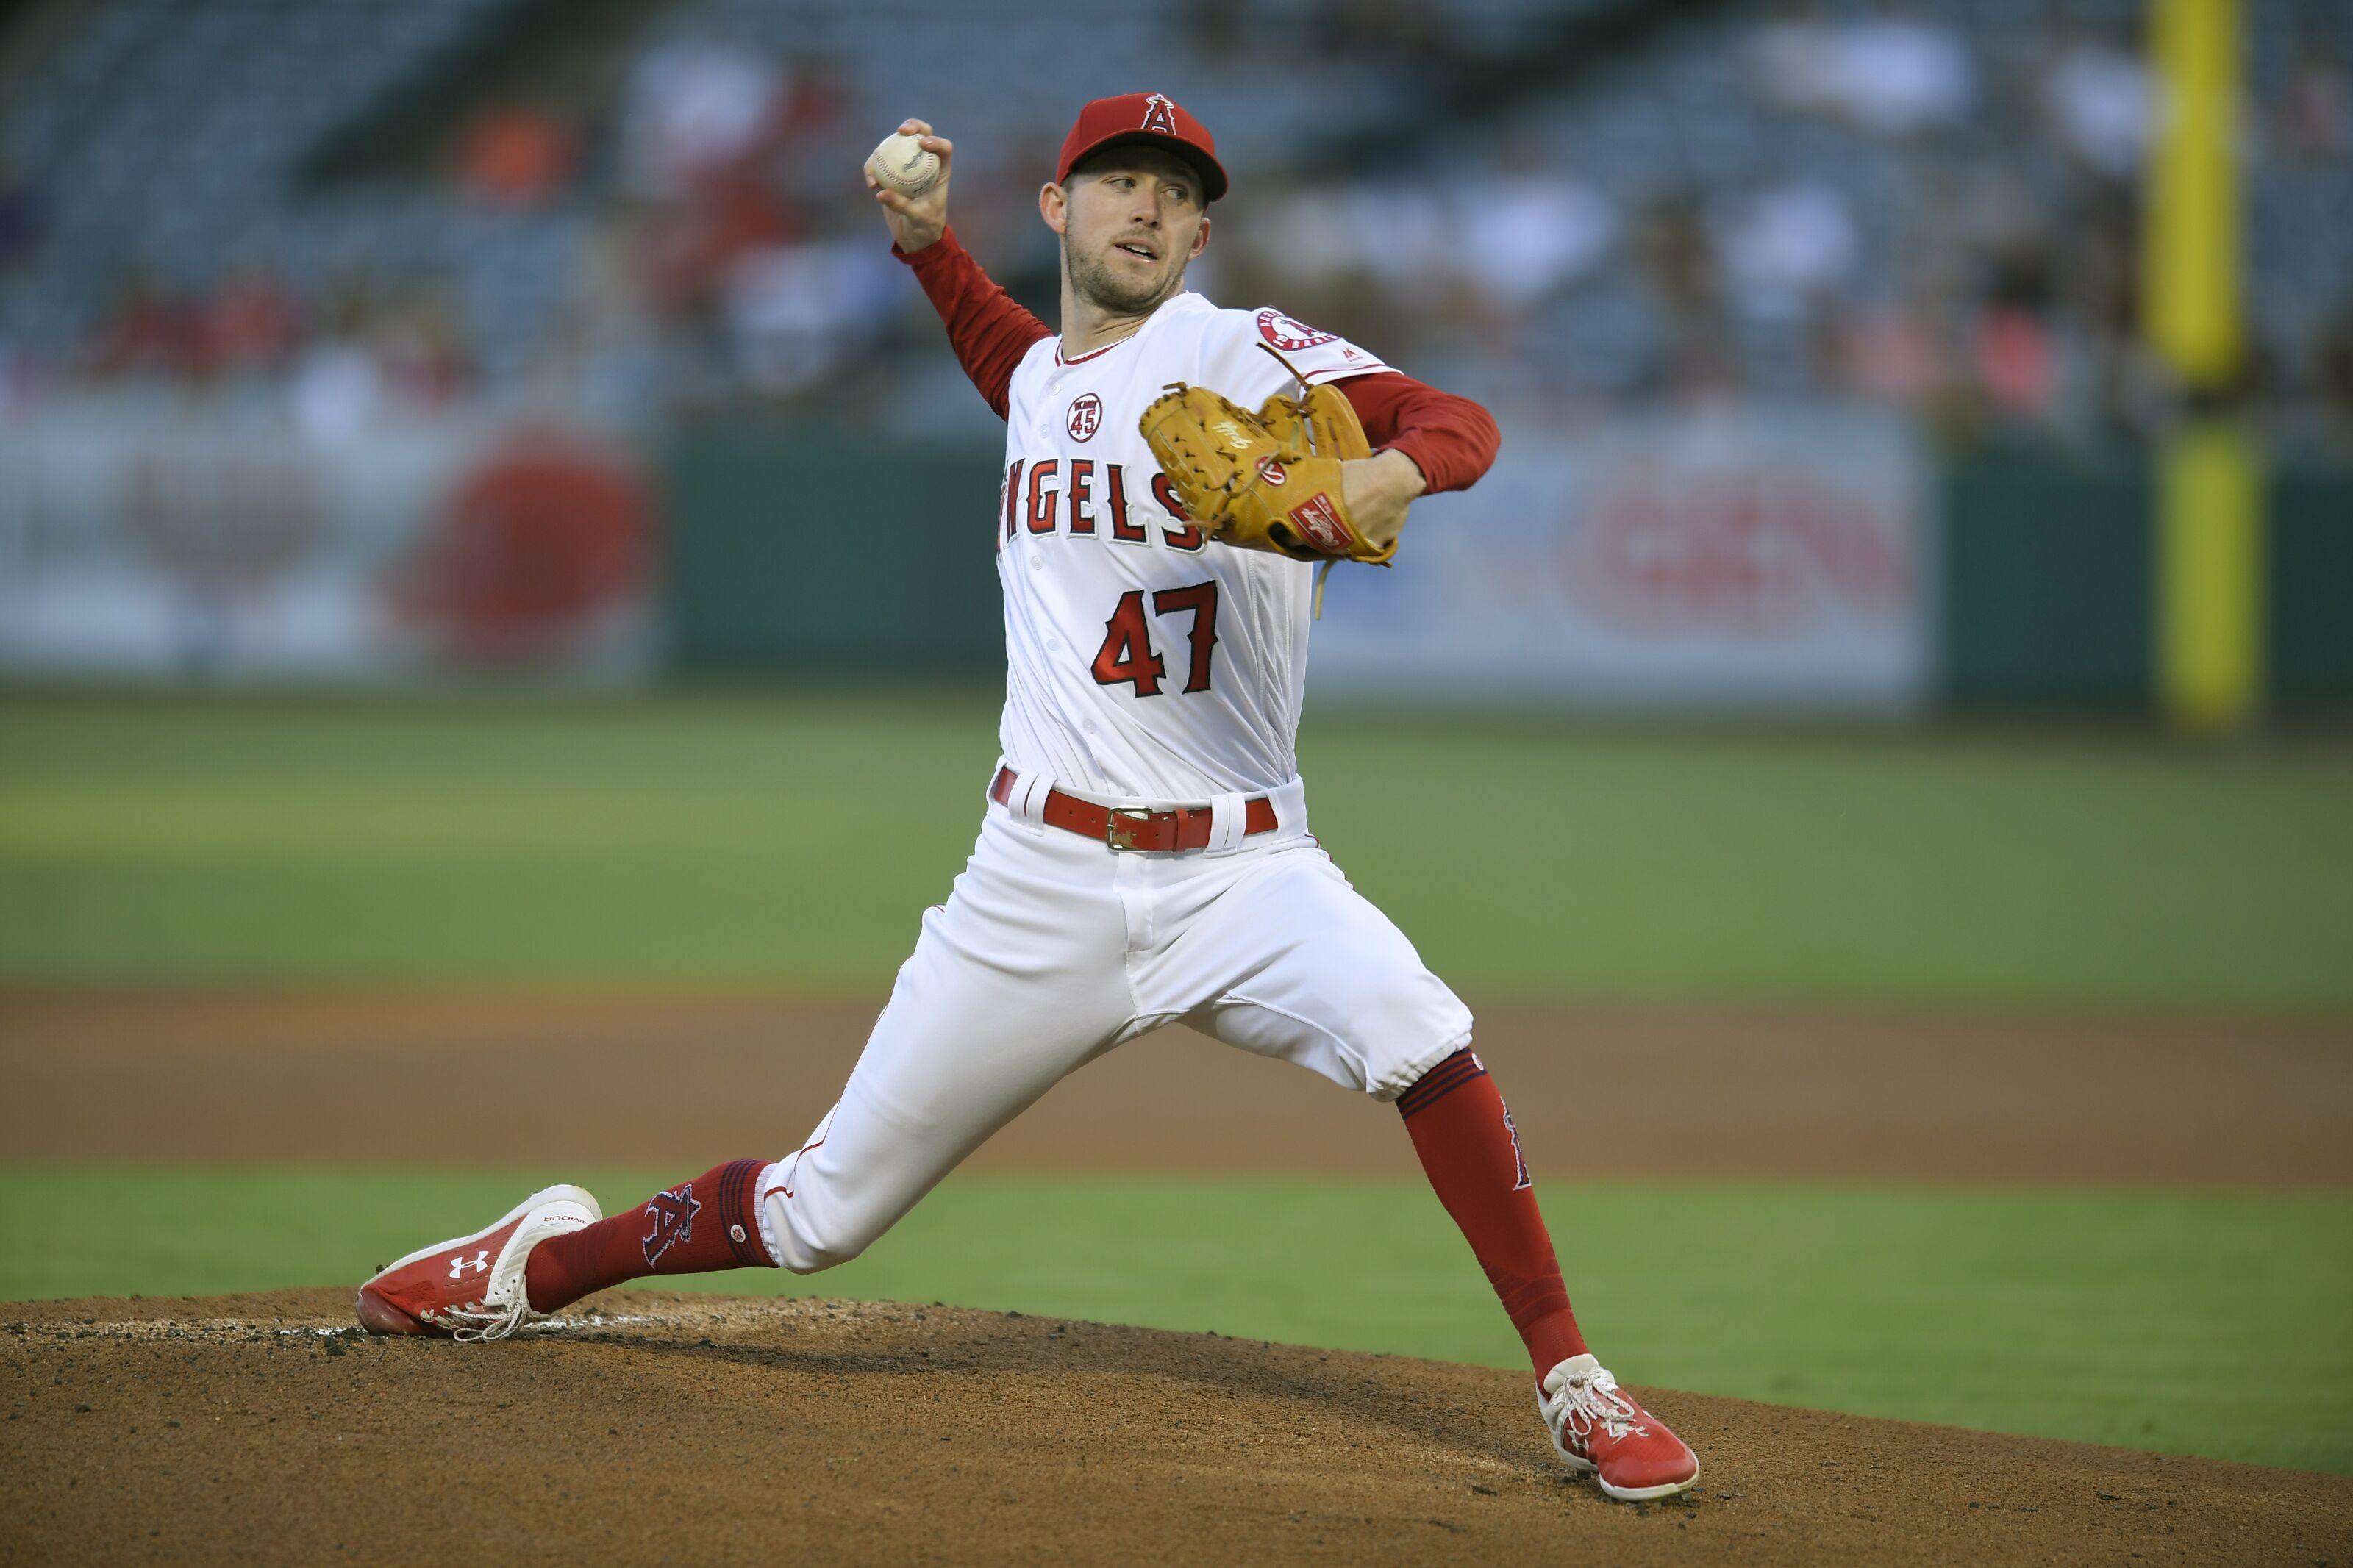 Usc Baseball Schedule 2020 Los Angeles Angels: Way too early 2020 rotation shows a lot of promise